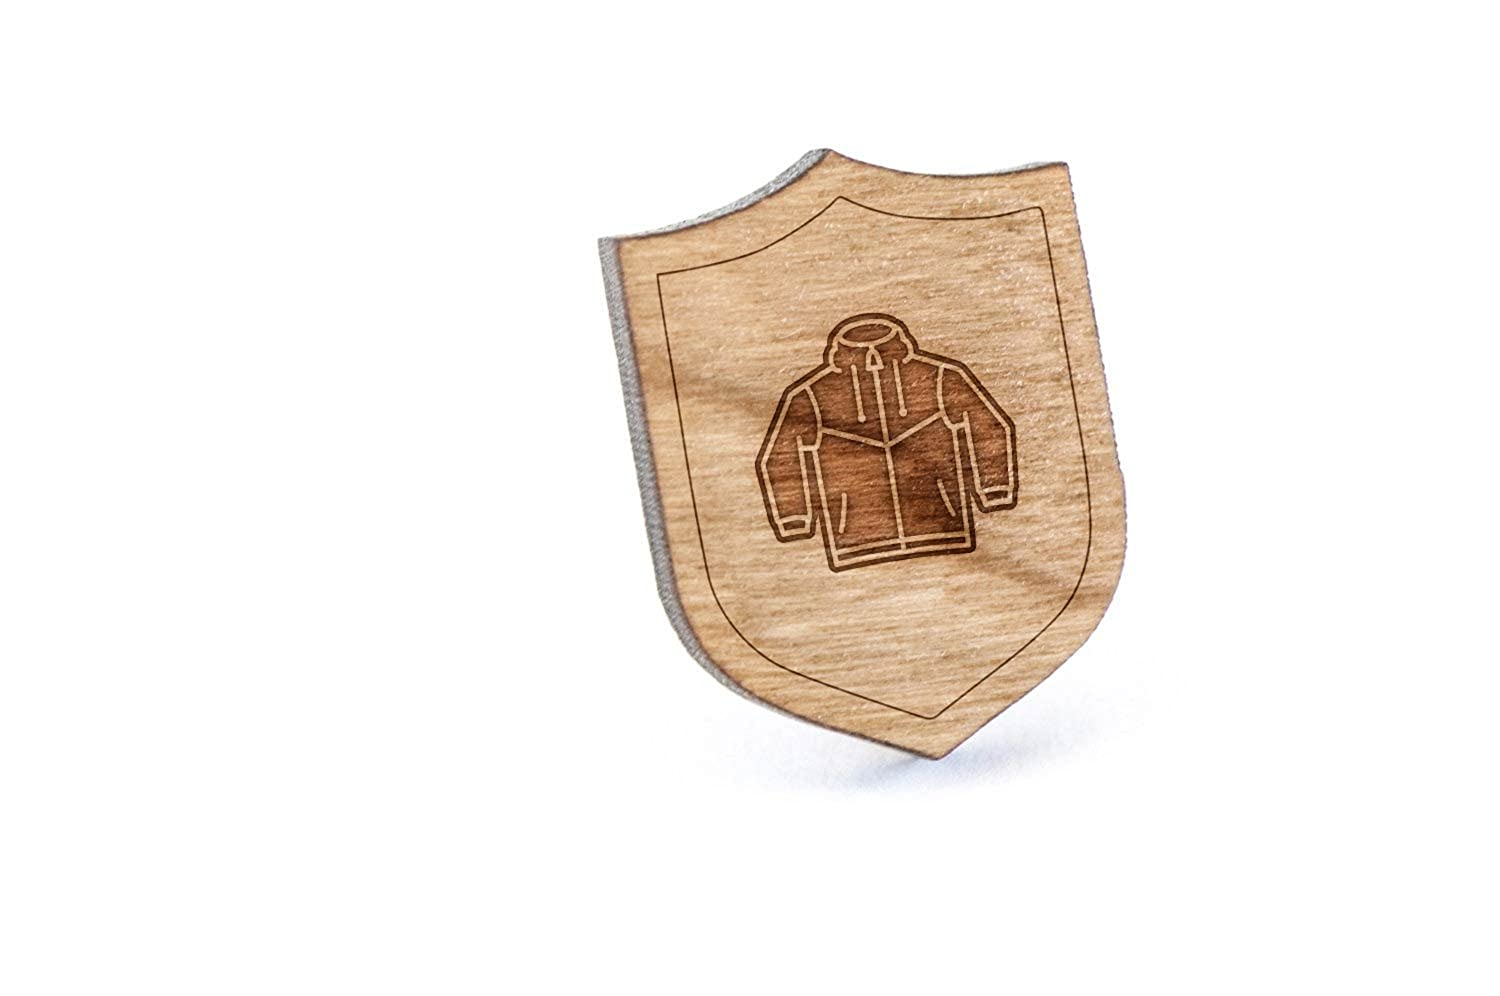 Windbreaker Lapel Pin, Wooden Pin And Tie Tack | Rustic And Minimalistic Groomsmen Gifts And Wedding Accessories